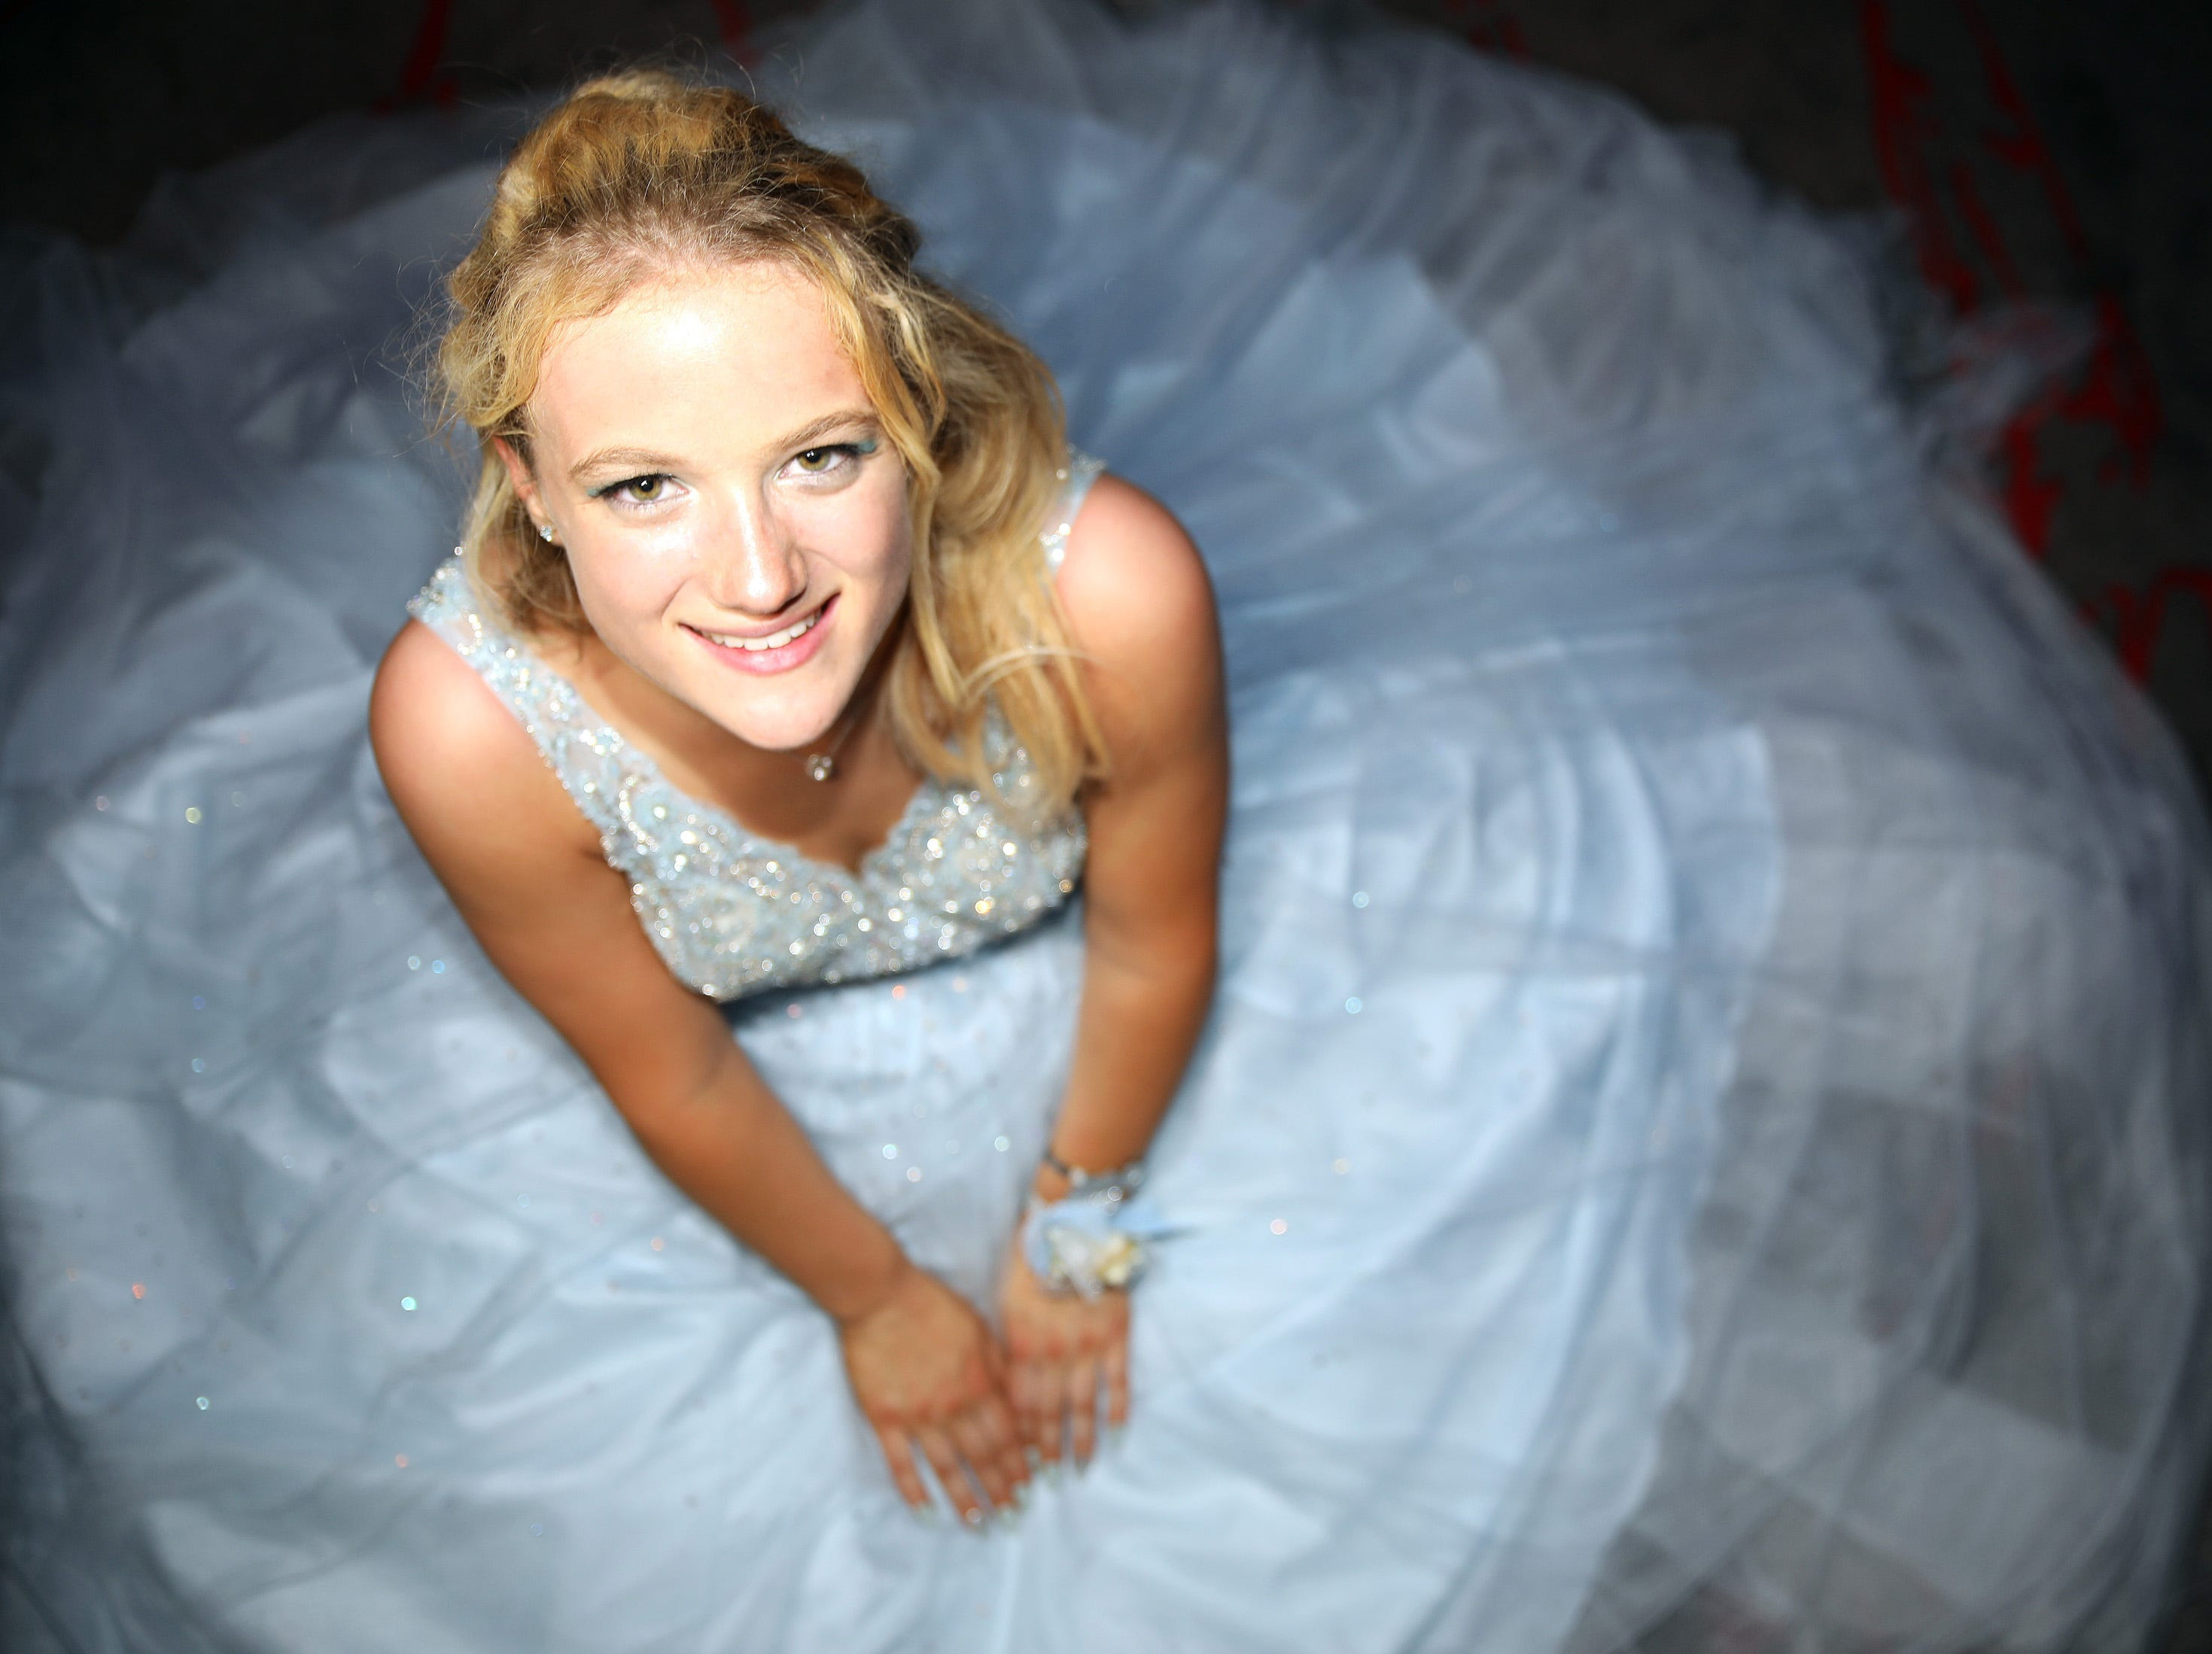 Junior Lexi Hubert sits for a portrait during the Waukee High School Prom at the Ron Pearson Center in West Des Moines on Saturday, April 6, 2019.